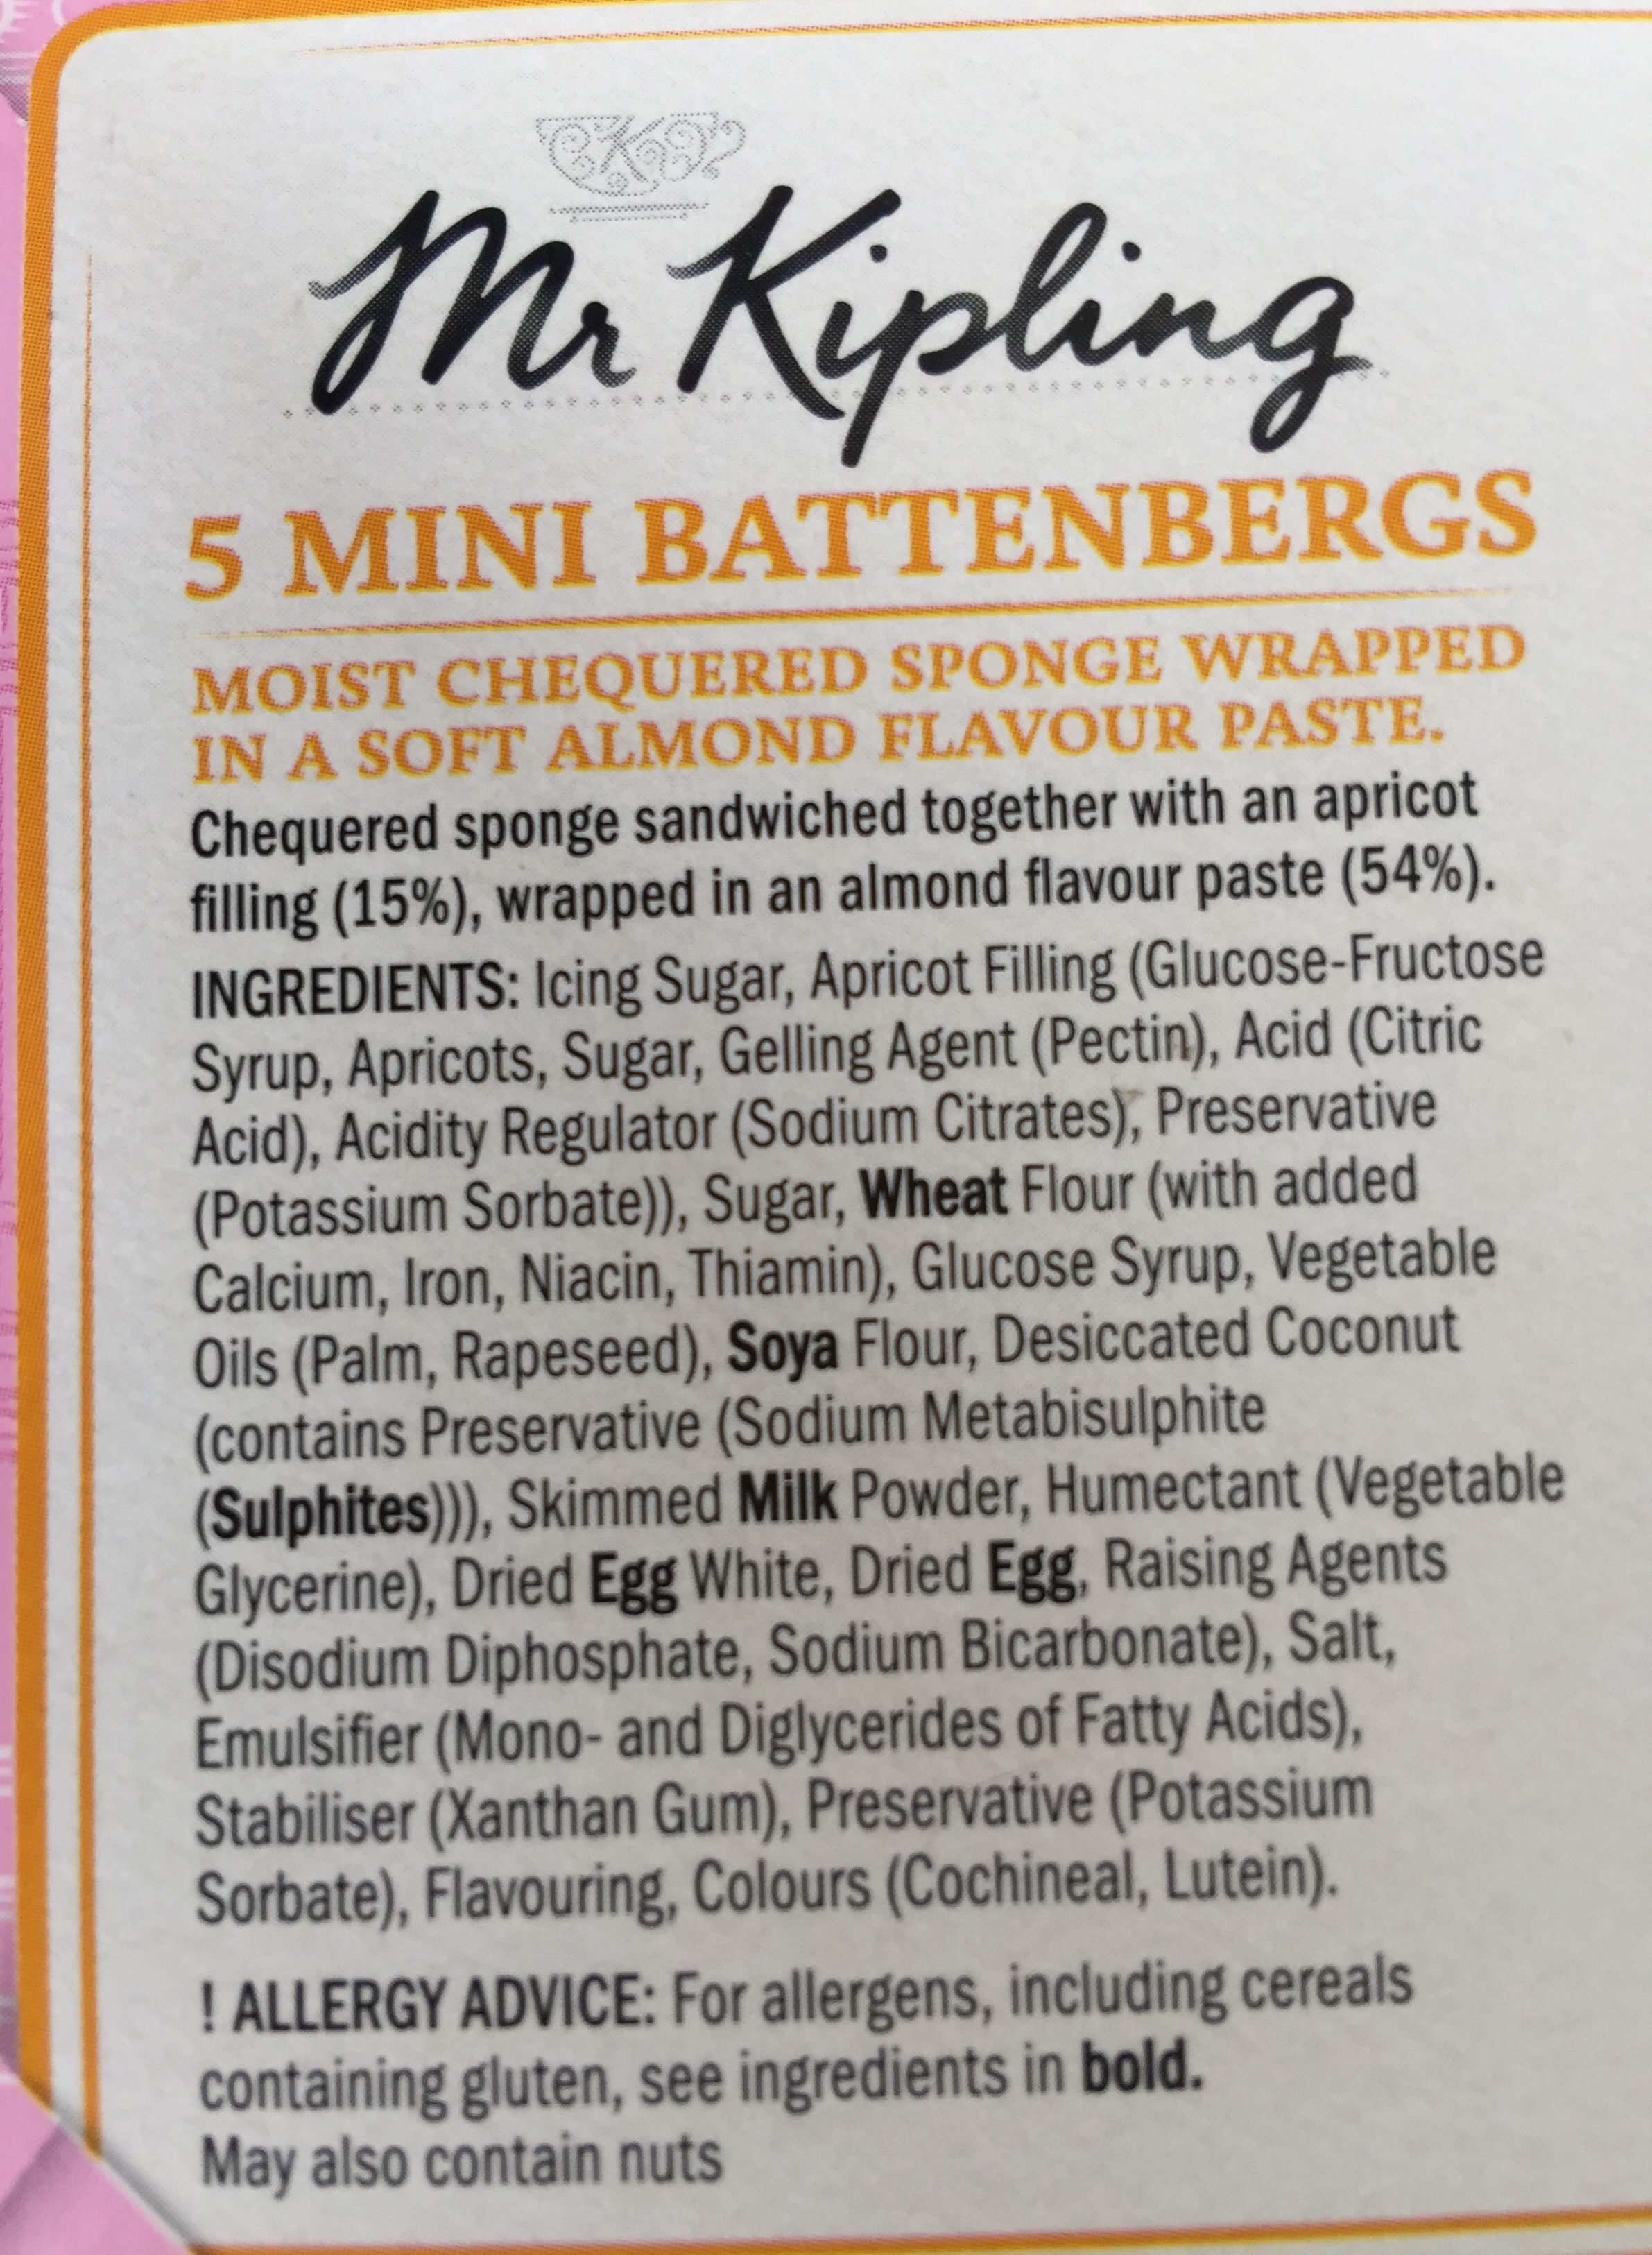 5 Mini Battenbergs - Ingredients